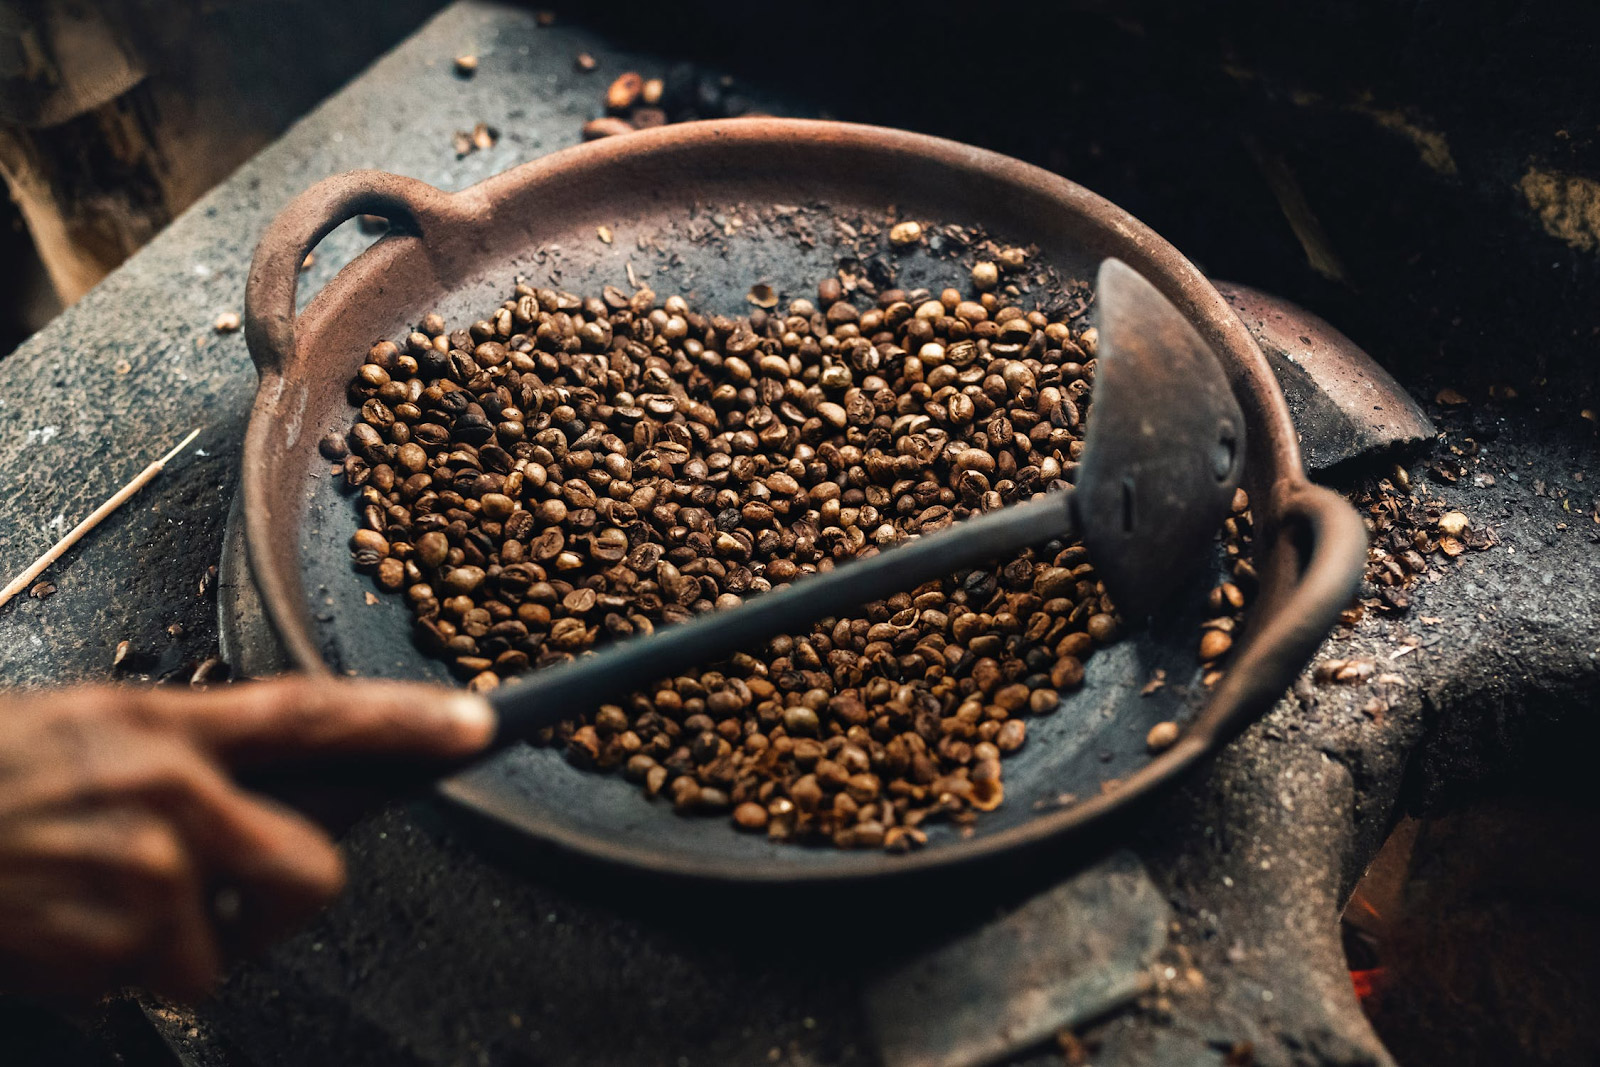 a person roasting coffee beans on a pan